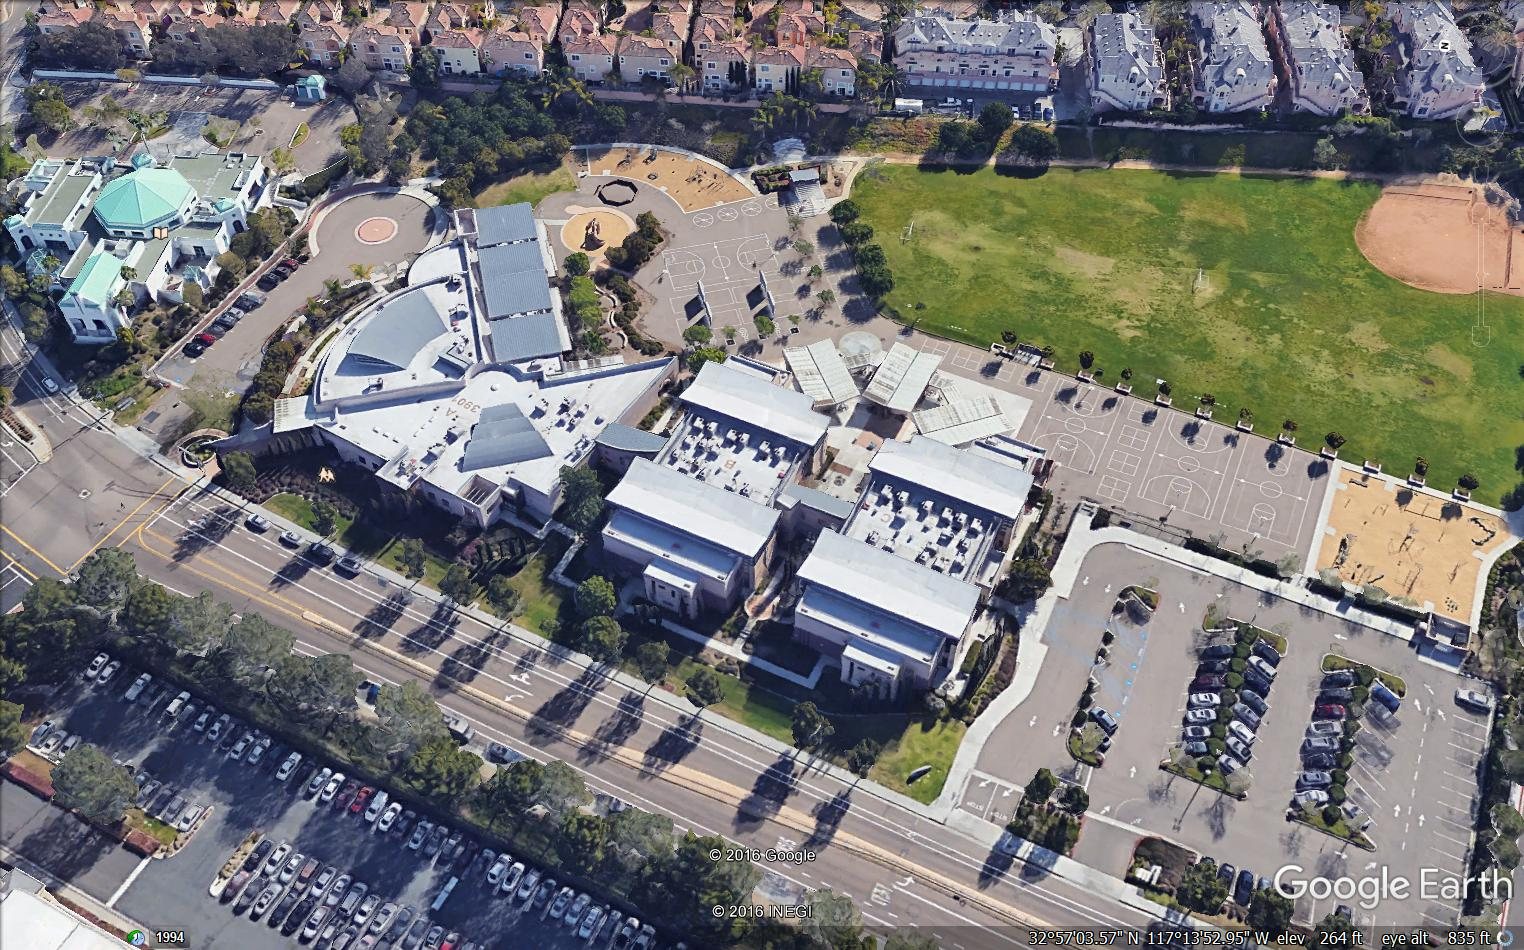 Carmel Valley Middle School and Carmel Valley Library